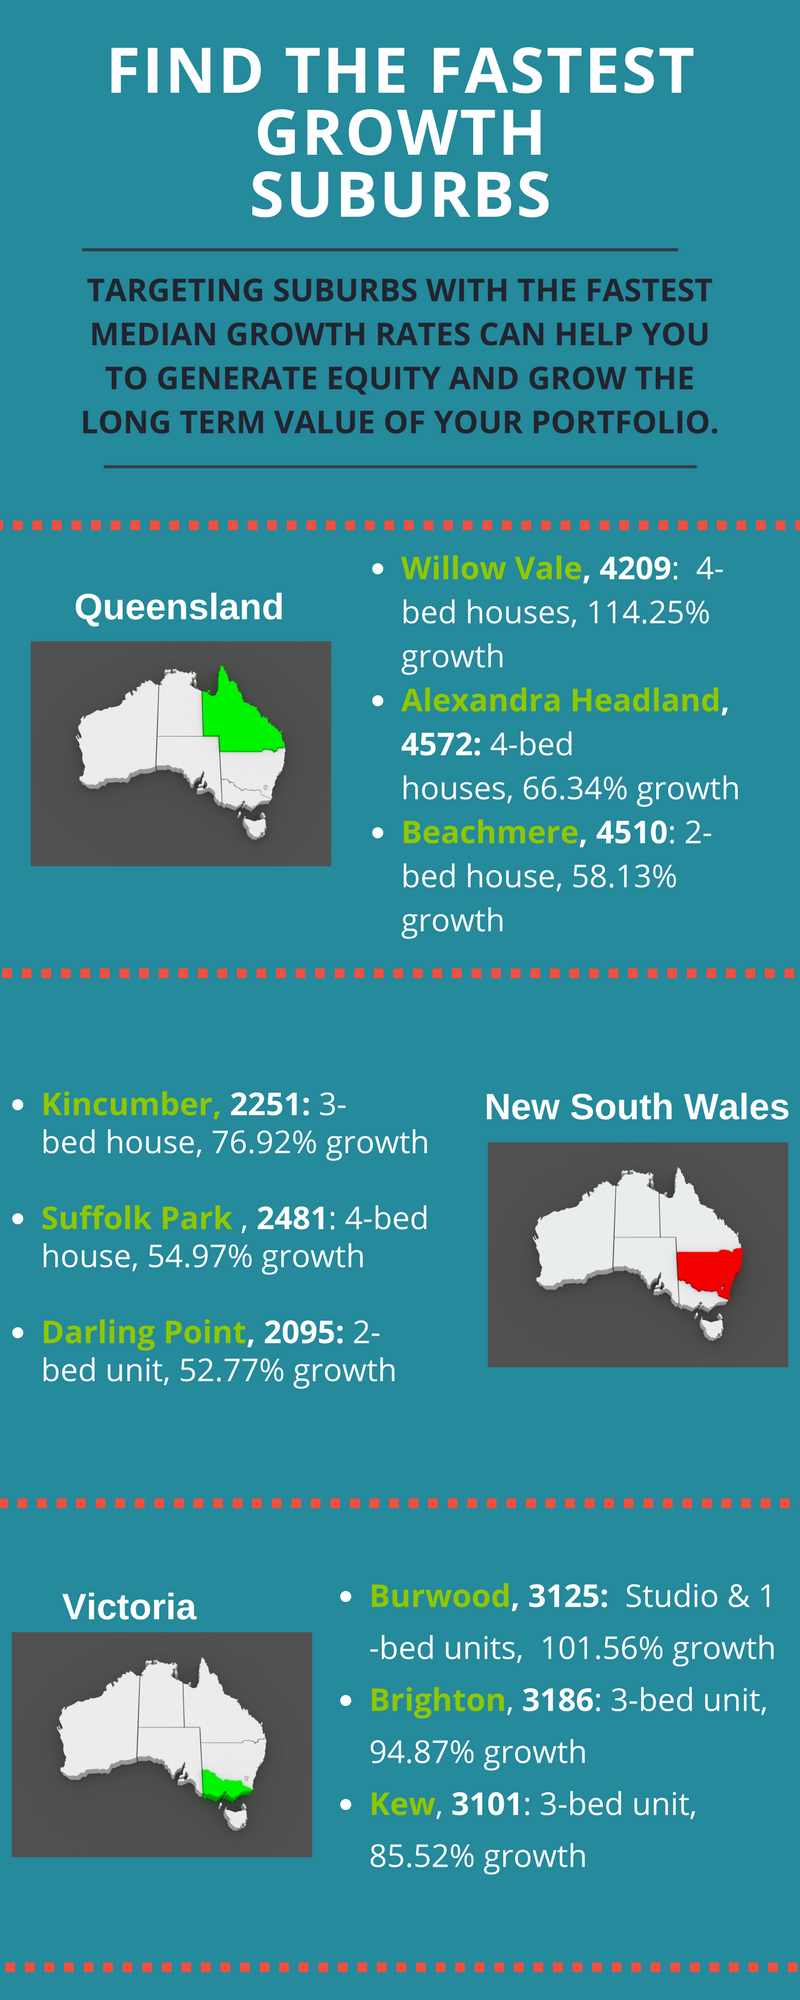 Fastest Growth Suburbs